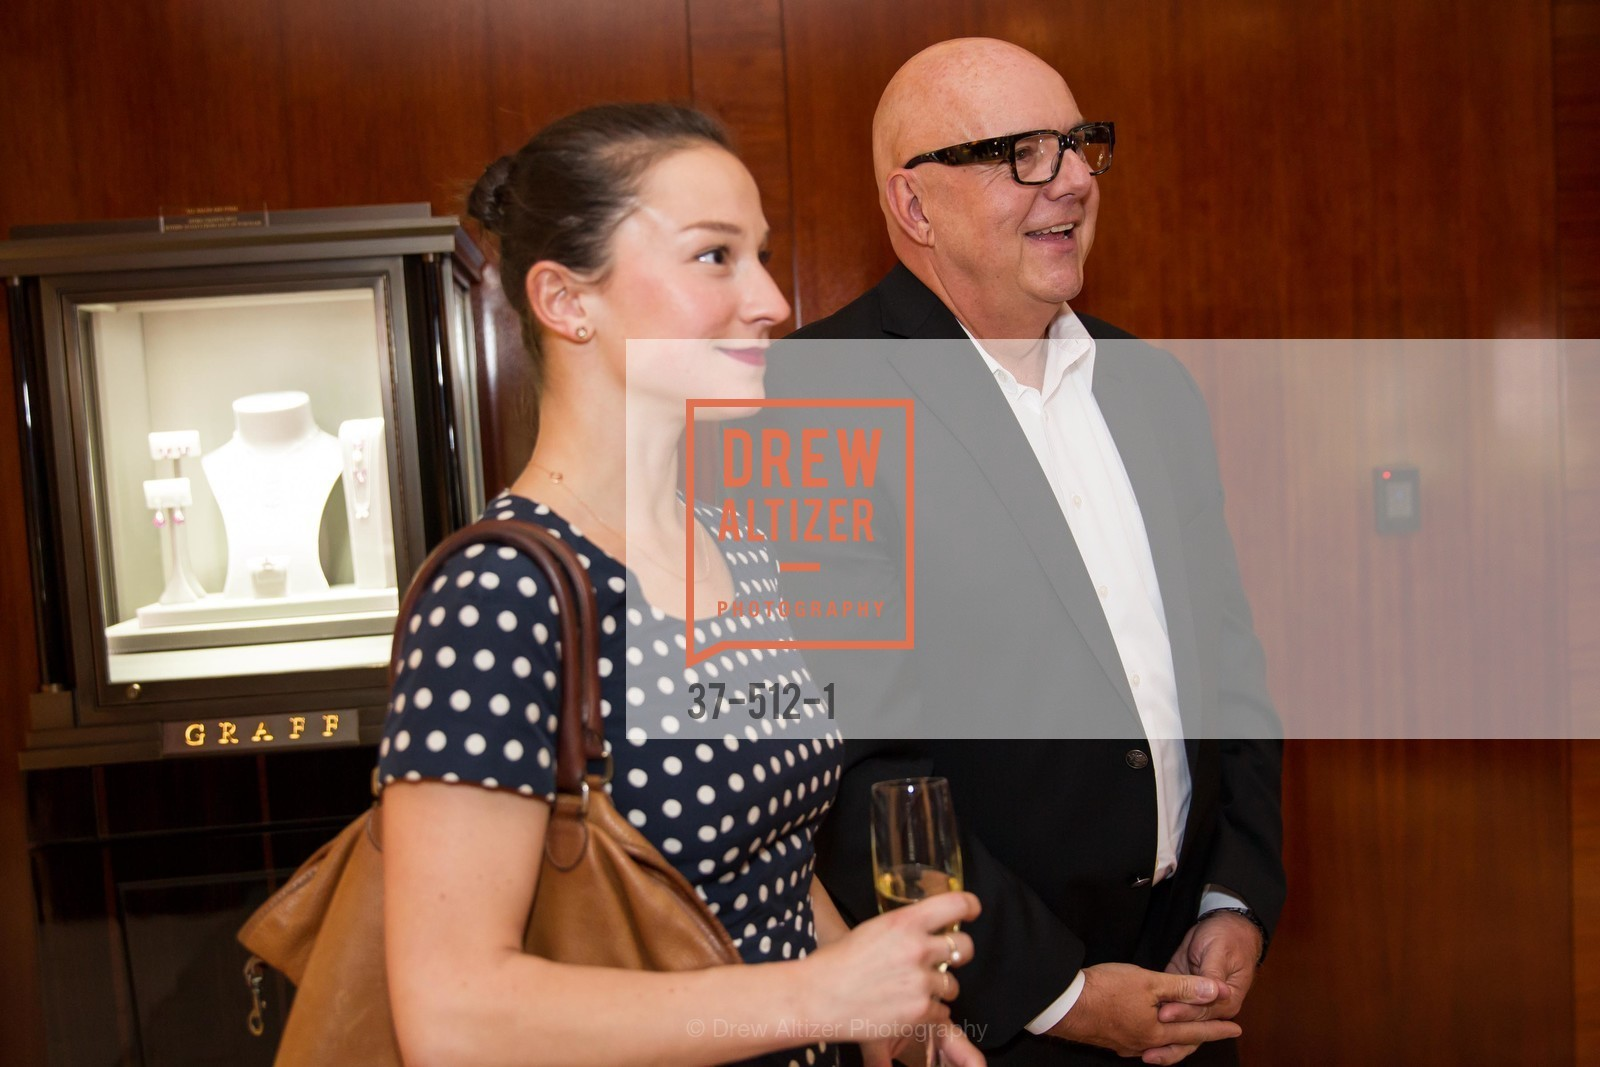 Terez Dean, Robert Atkinson, GRAFF Celebrates SMUIN BALLET, US. 237 Post Street SF, April 9th, 2014,Drew Altizer, Drew Altizer Photography, full-service agency, private events, San Francisco photographer, photographer california